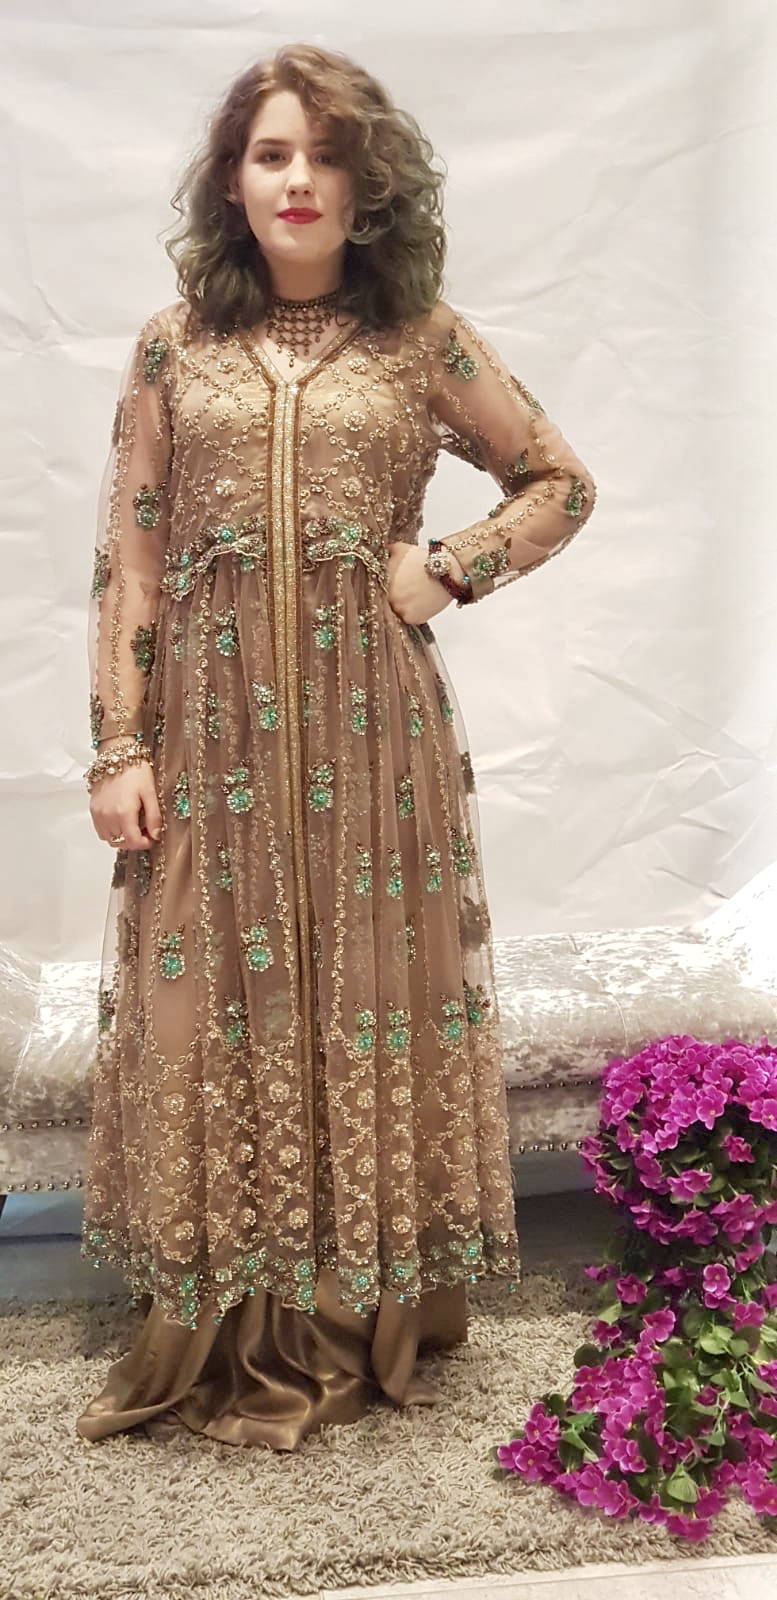 Desert Tan Long Dress Sarah Zaaraz London Fashion Designer Pakistani Dress Designer Bridal Dresses